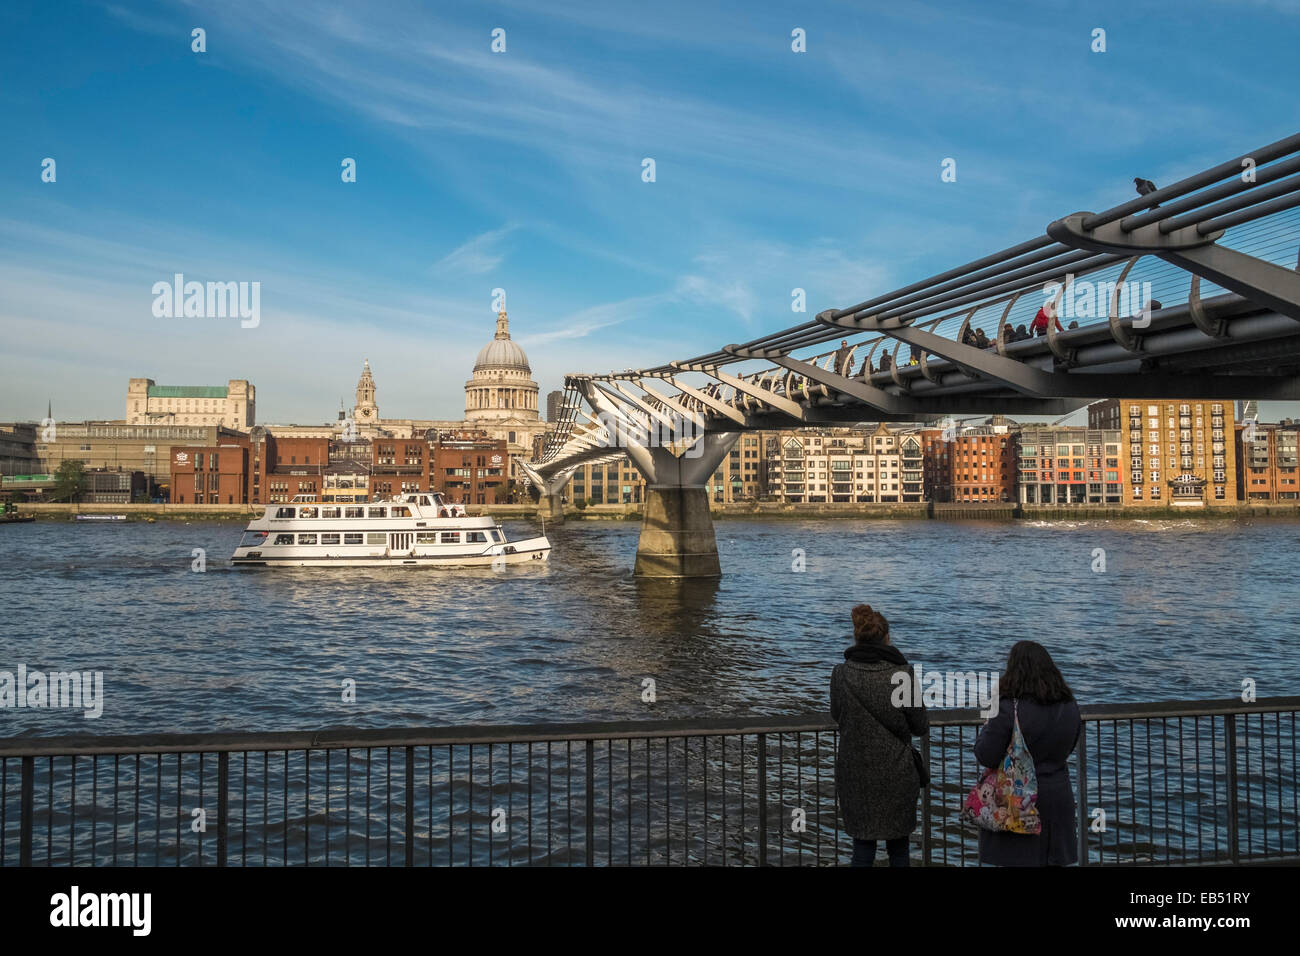 Millenium Bridge, Looking towards St Pauls Cathedral, London, England UK Stock Photo